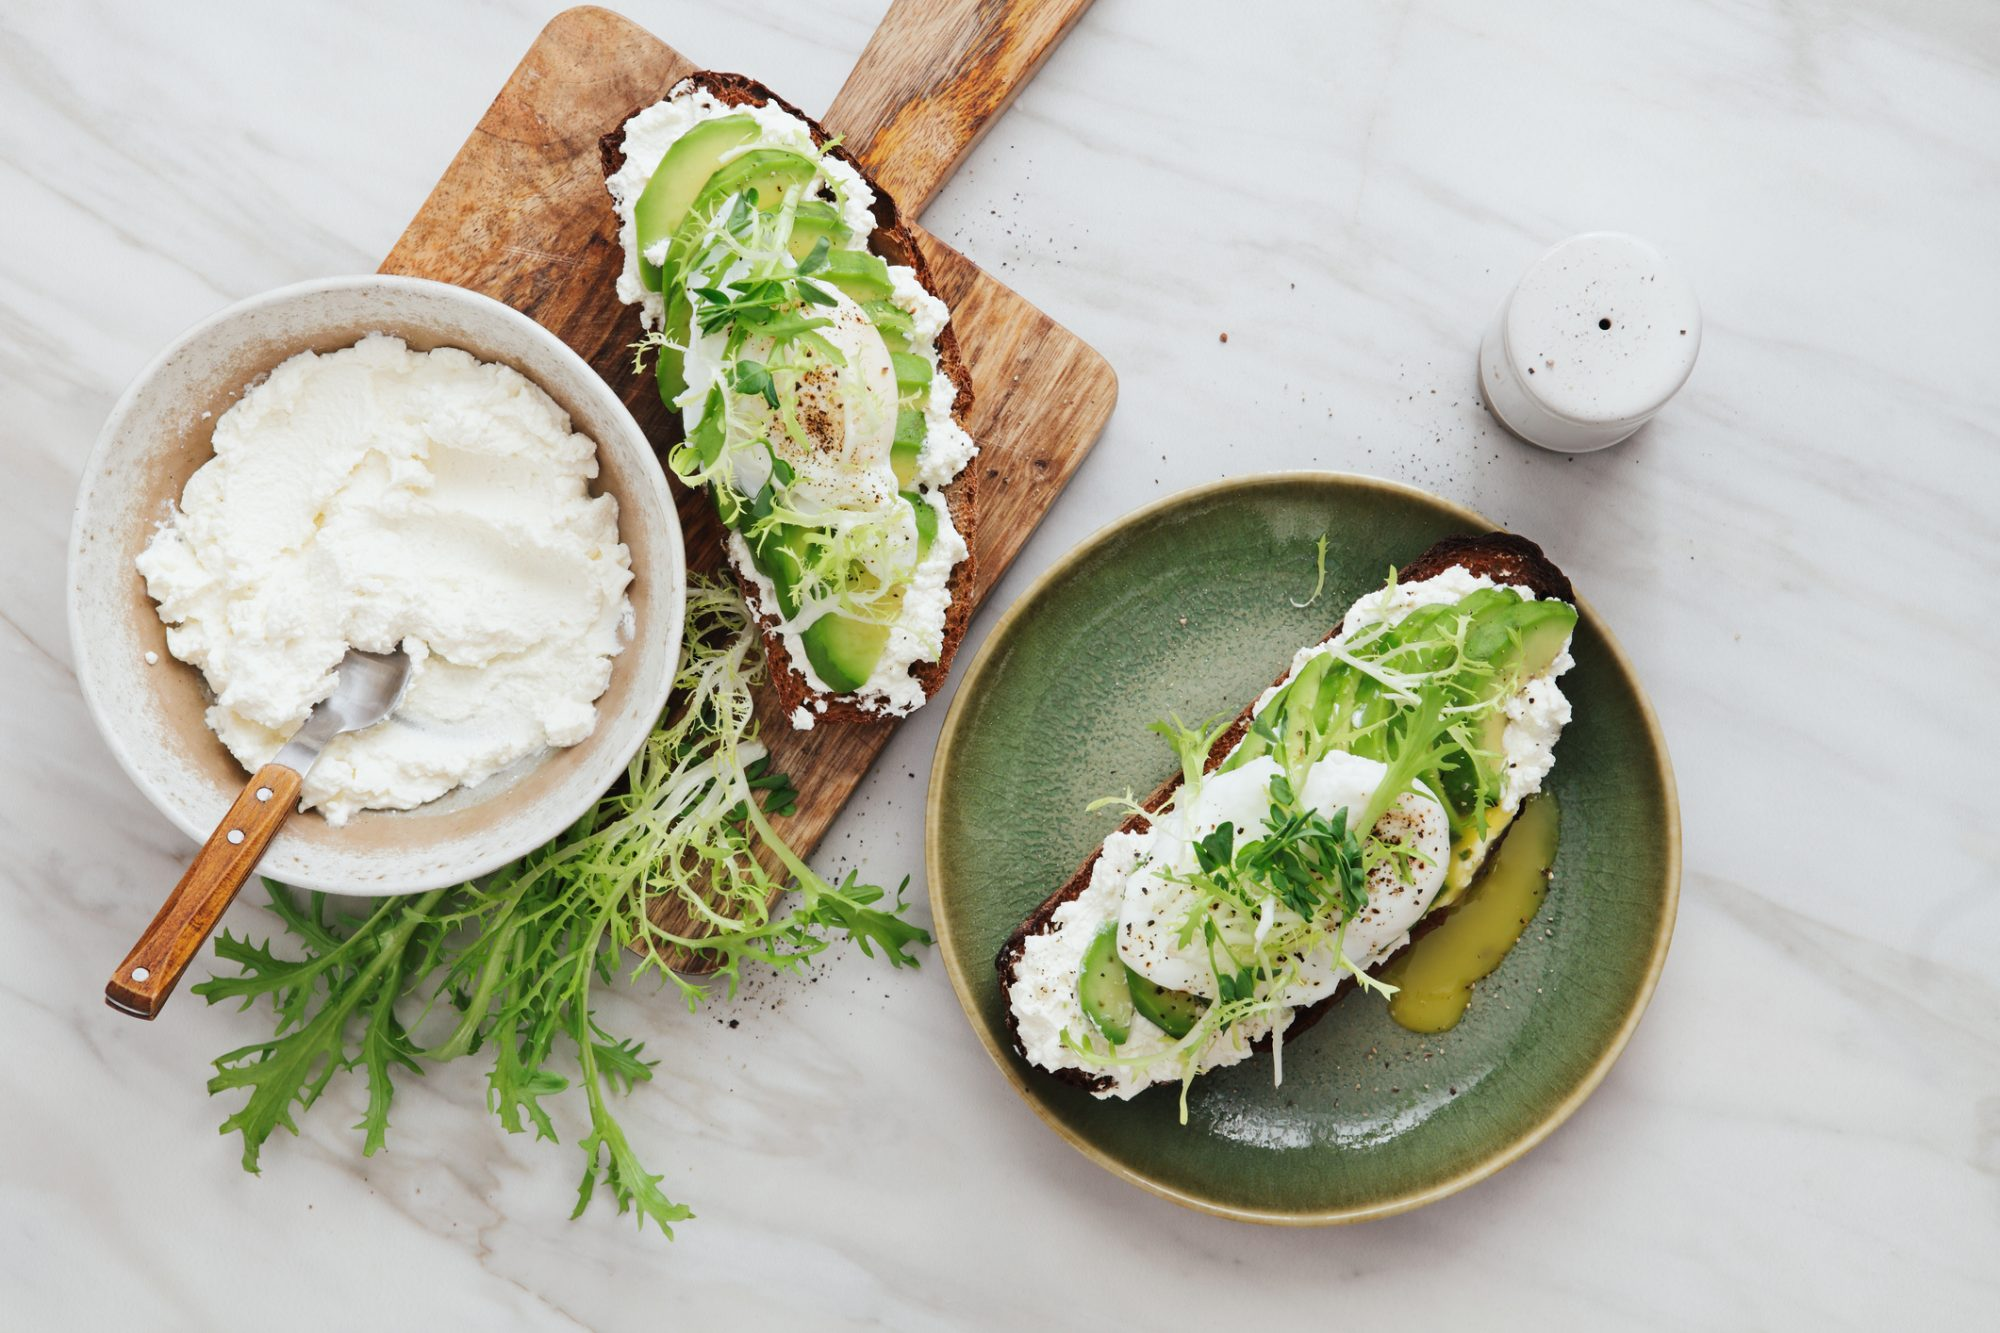 Why You Should Make Your Own Ricotta